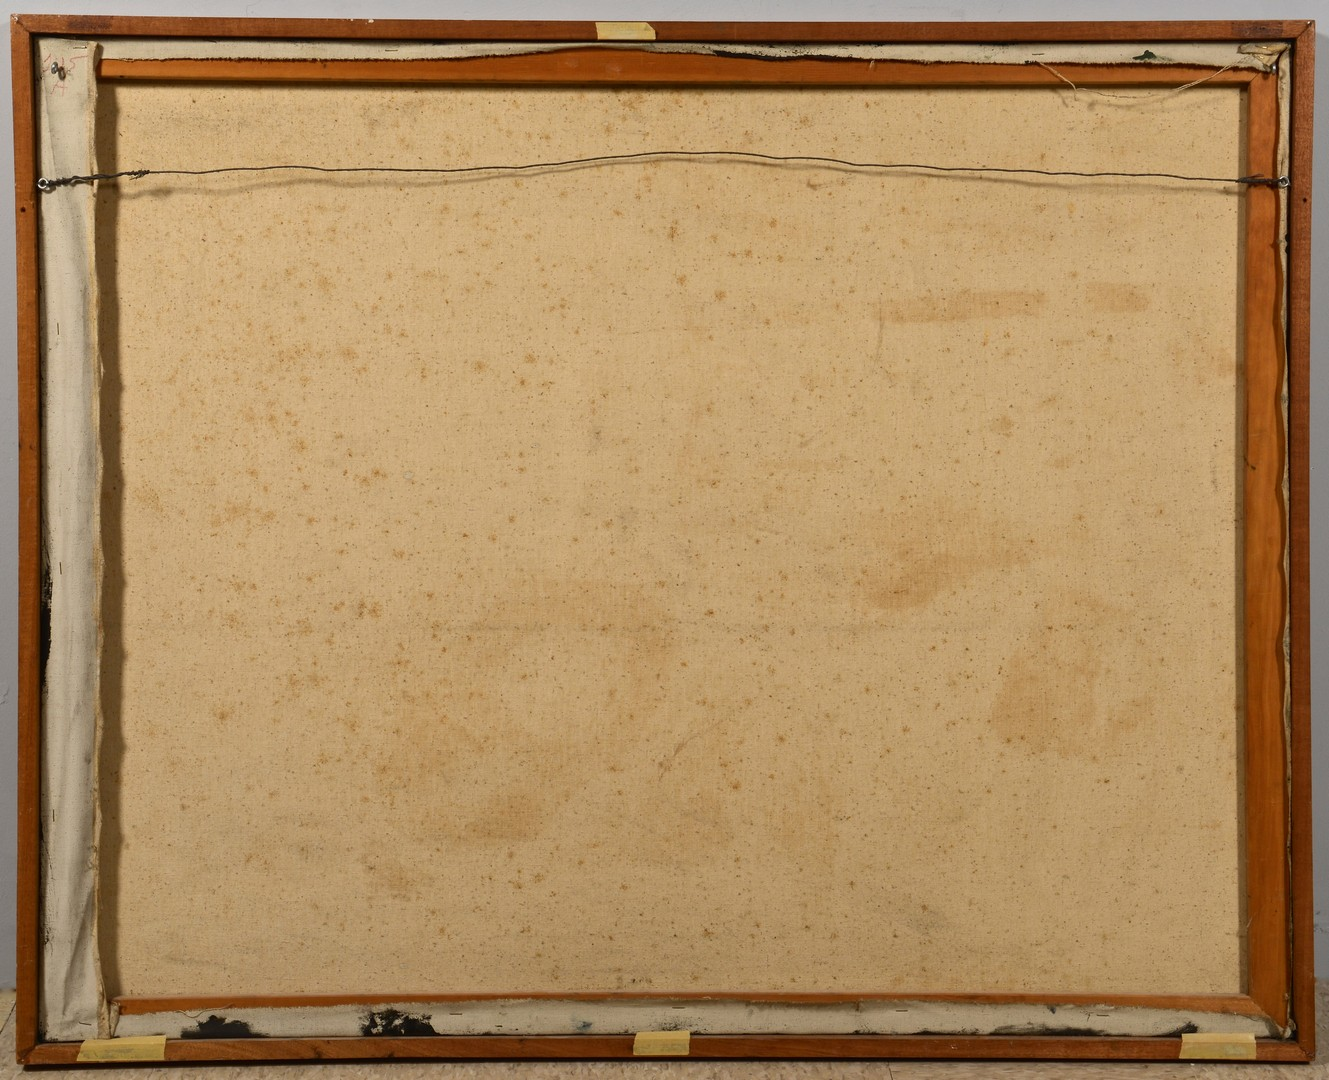 Lot 186: C. Kermit Ewing Abstract Oil on Canvas